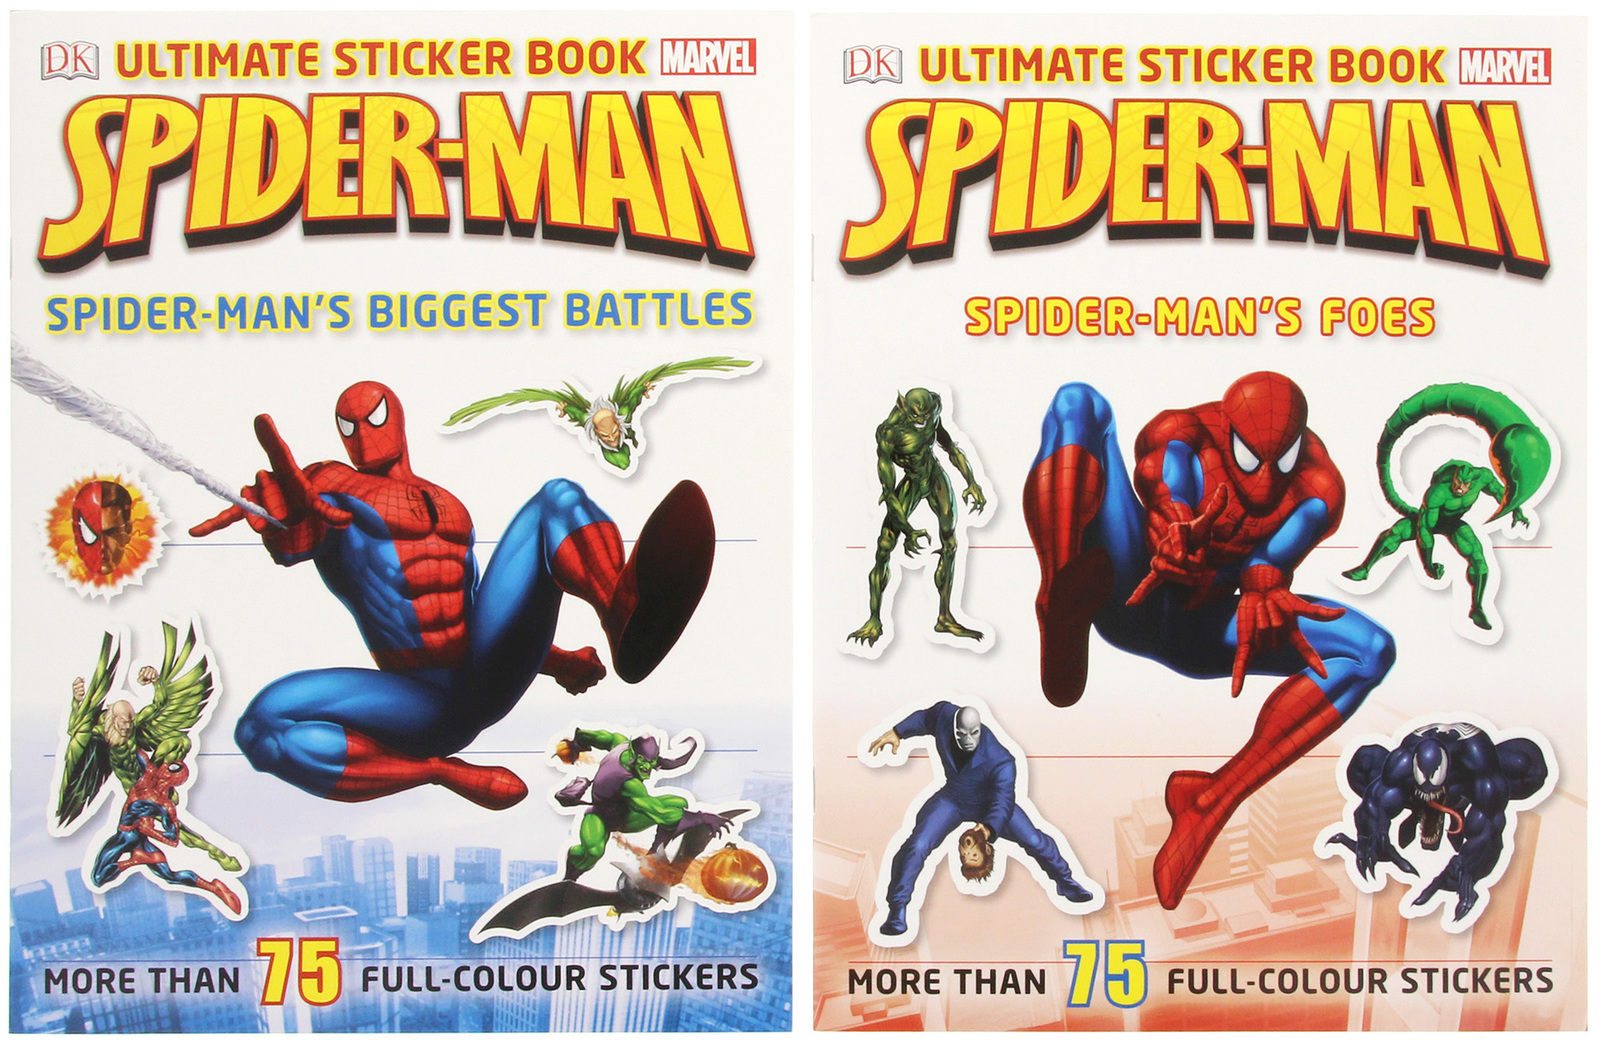 Marvel Sticker Adventures Dk Book In Stock Buy Now At Mighty Activity Books My Big And By Image